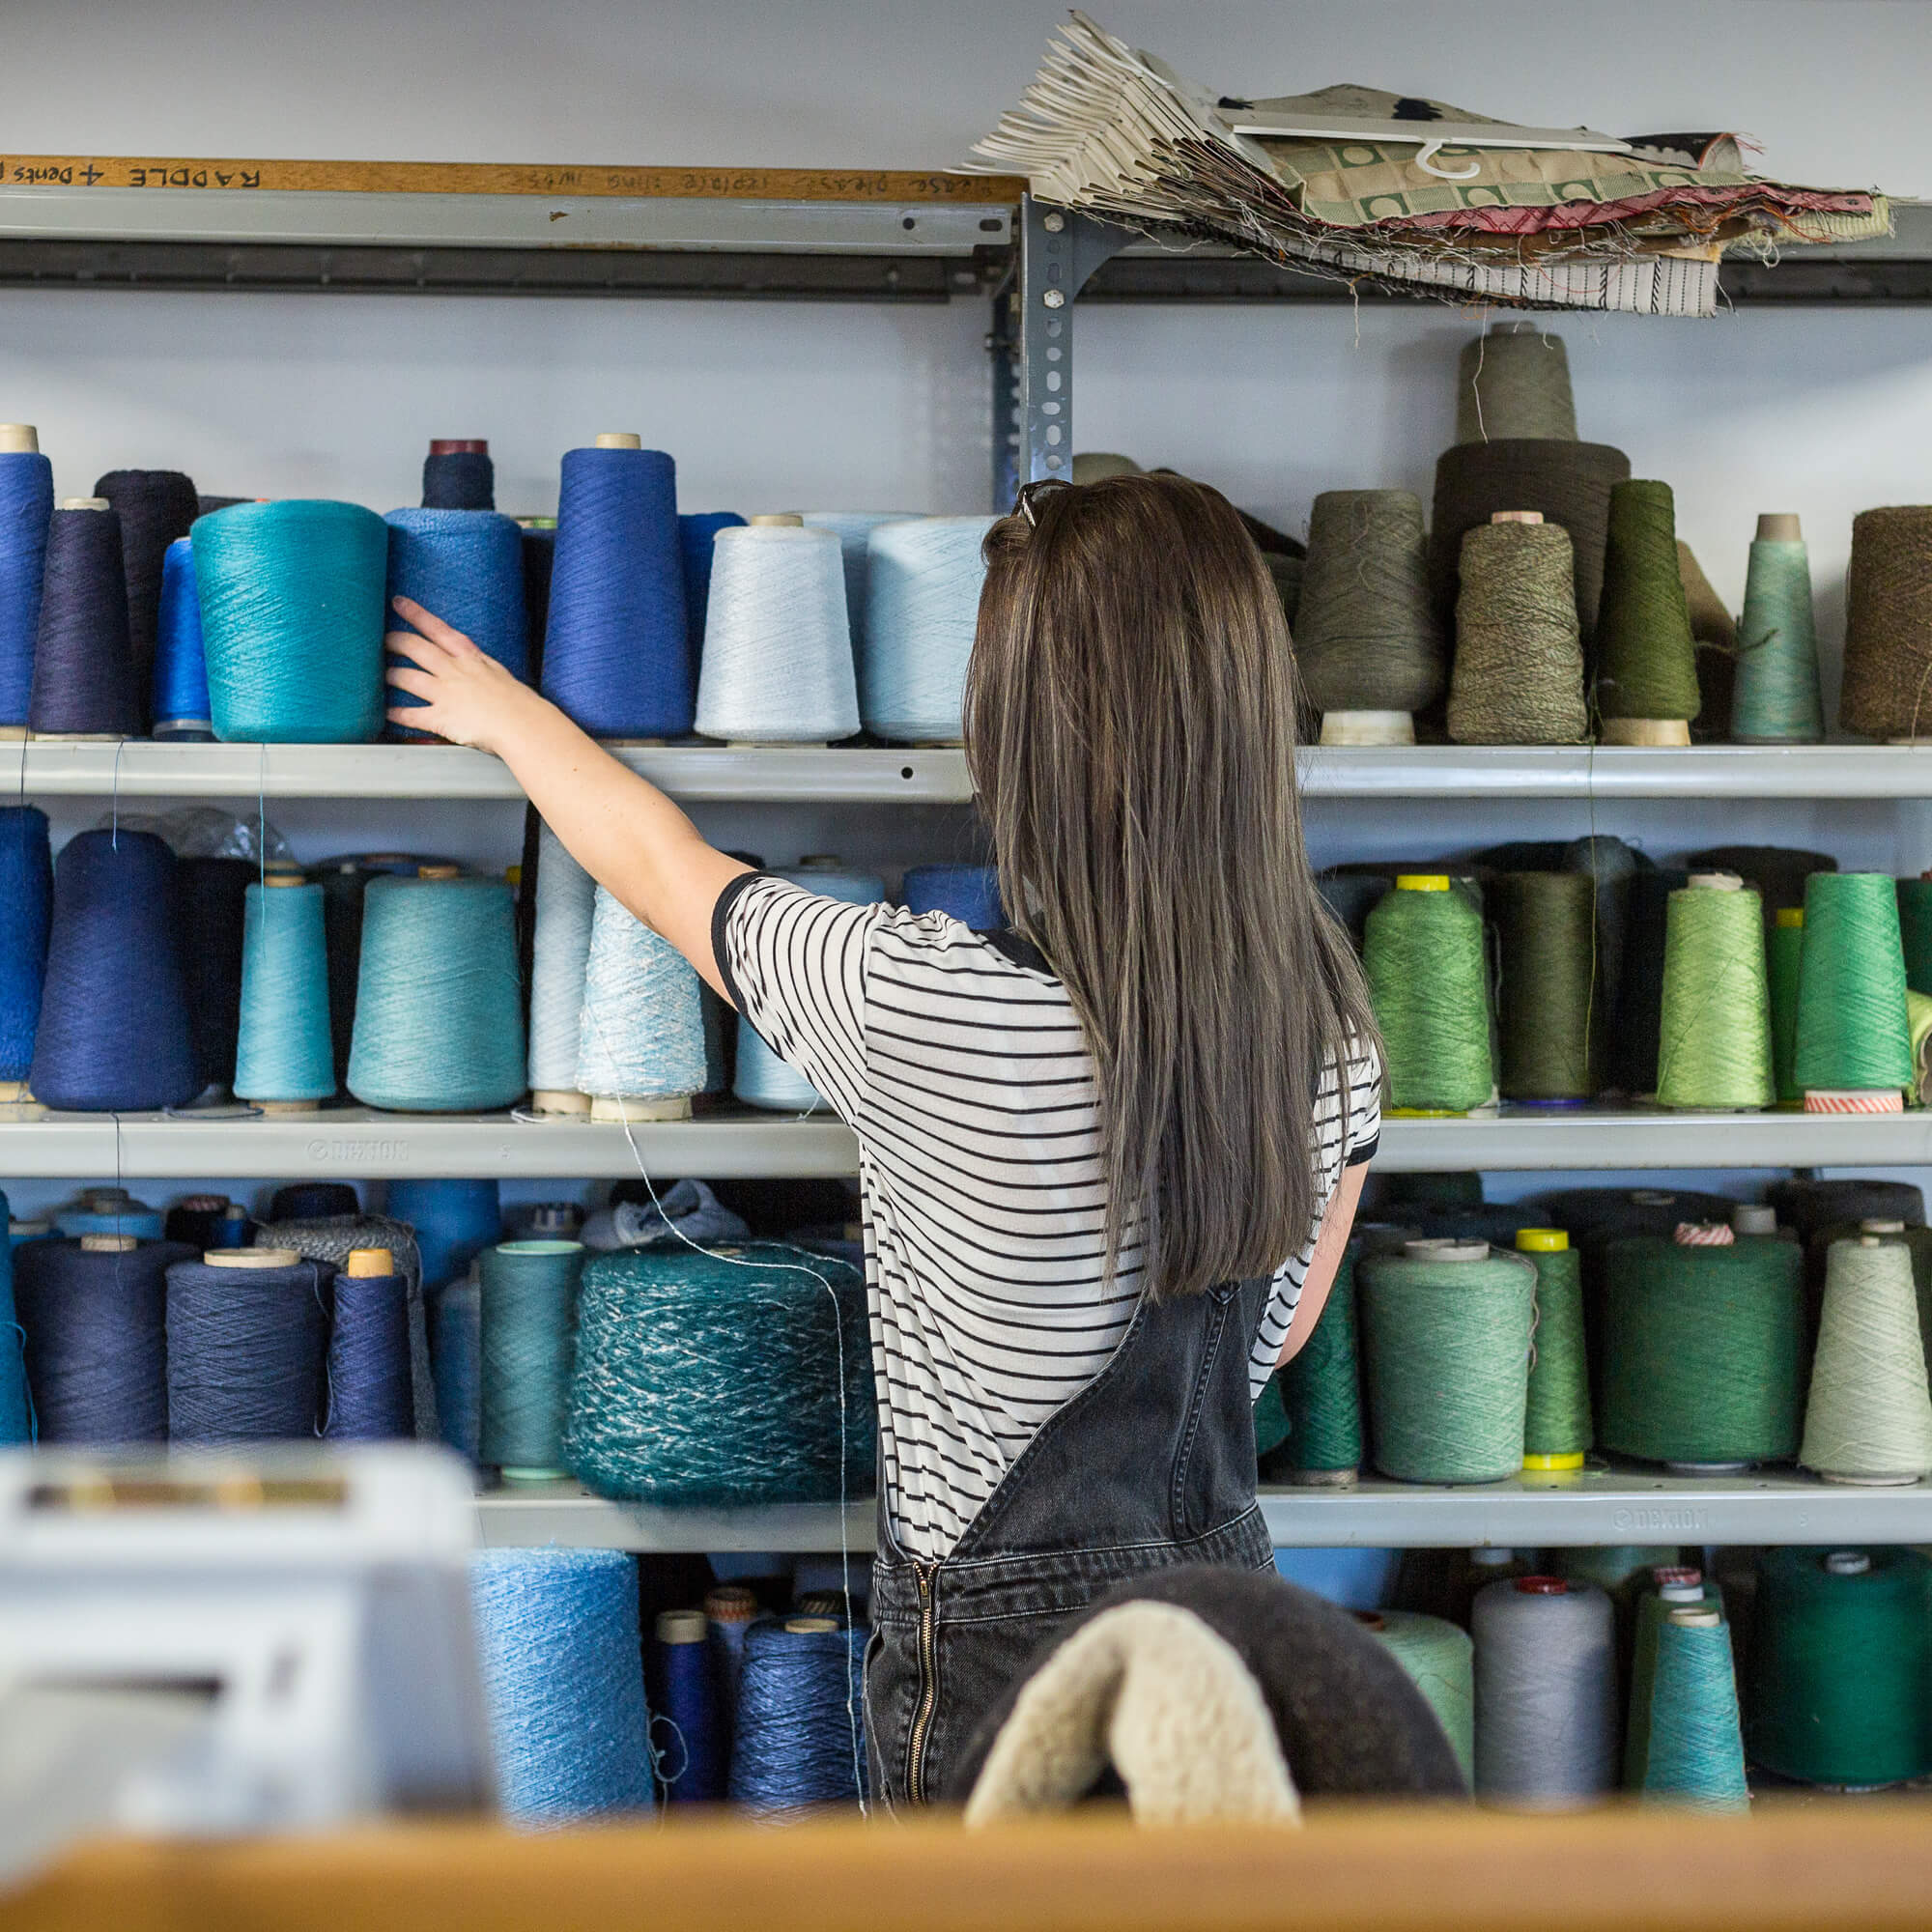 Student in textiles workshop with large spools of thread